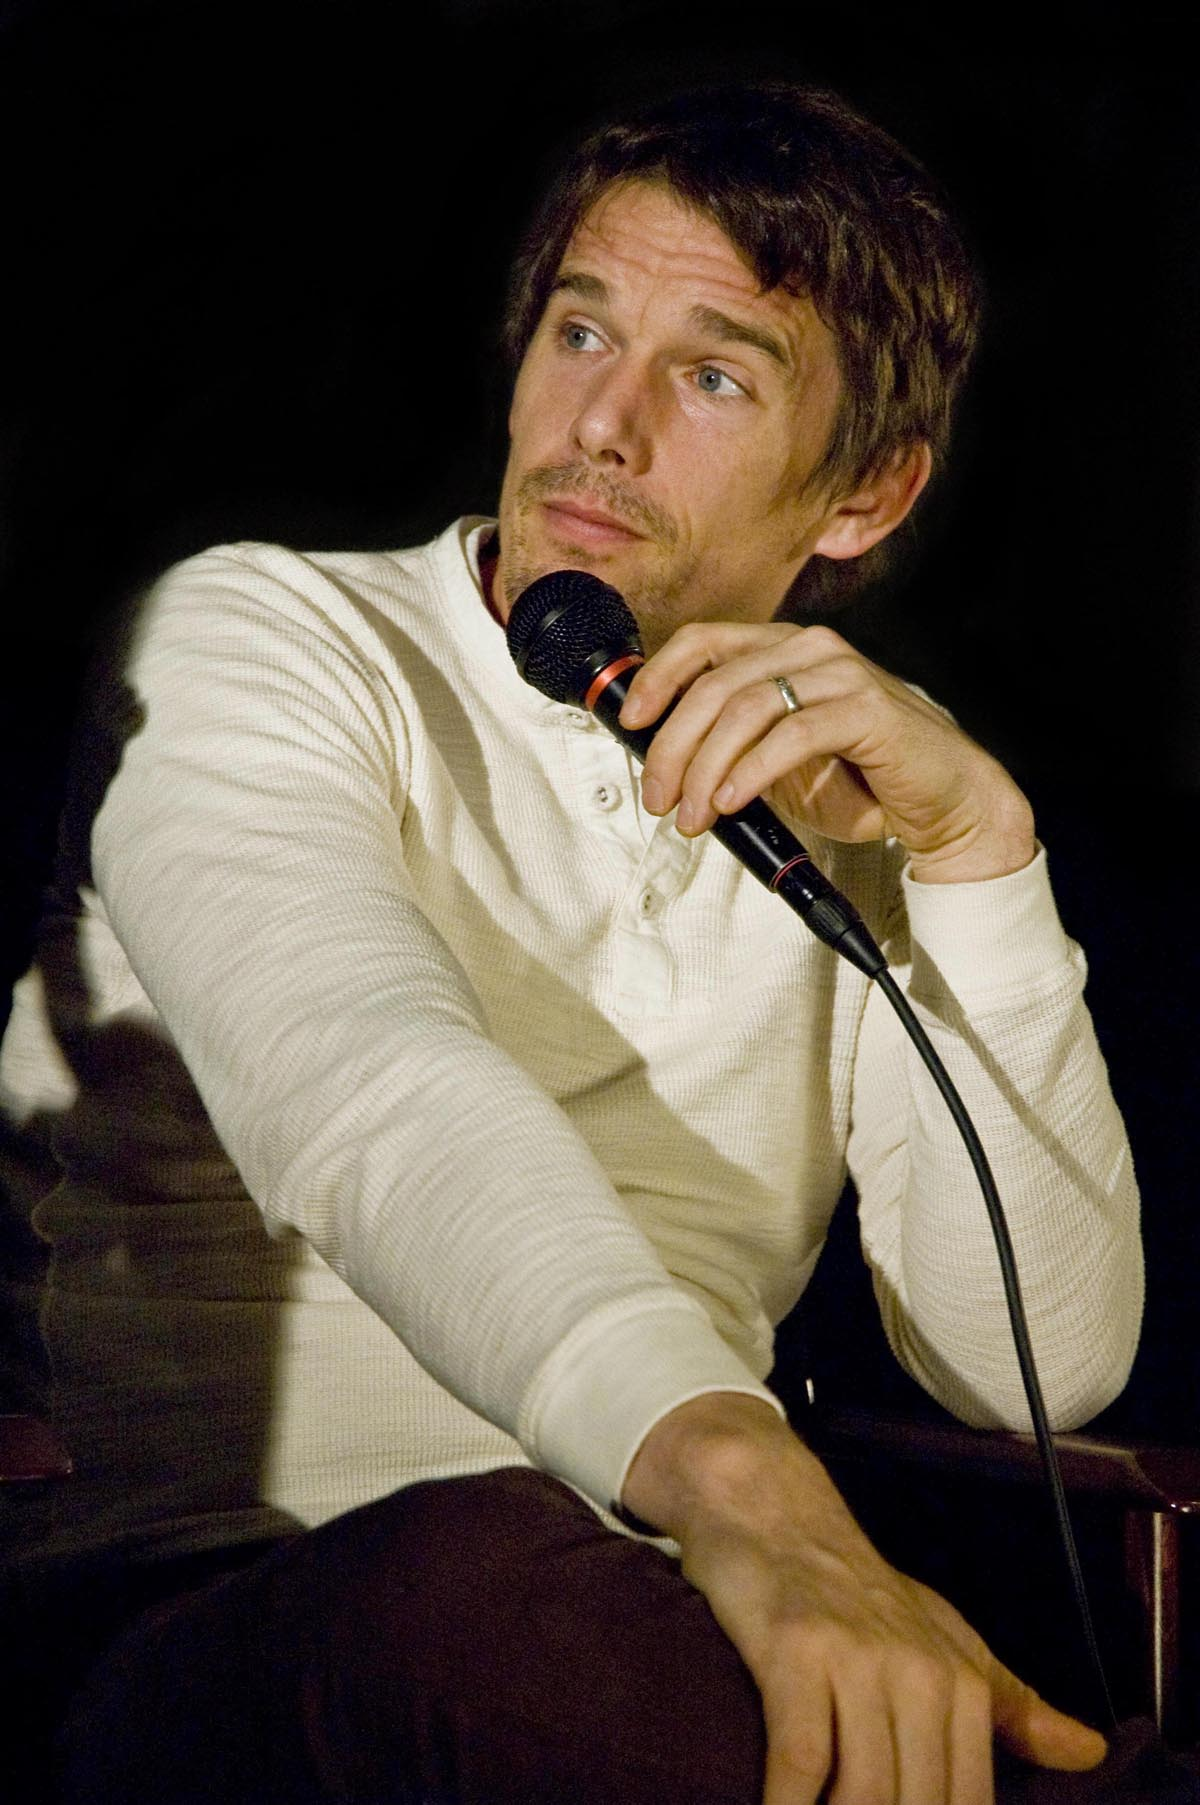 A Caucasian male with light brown hair and light brown stubble is facing to the left. He is wearing a white long sleeve shirt, and is holding a black microphone.